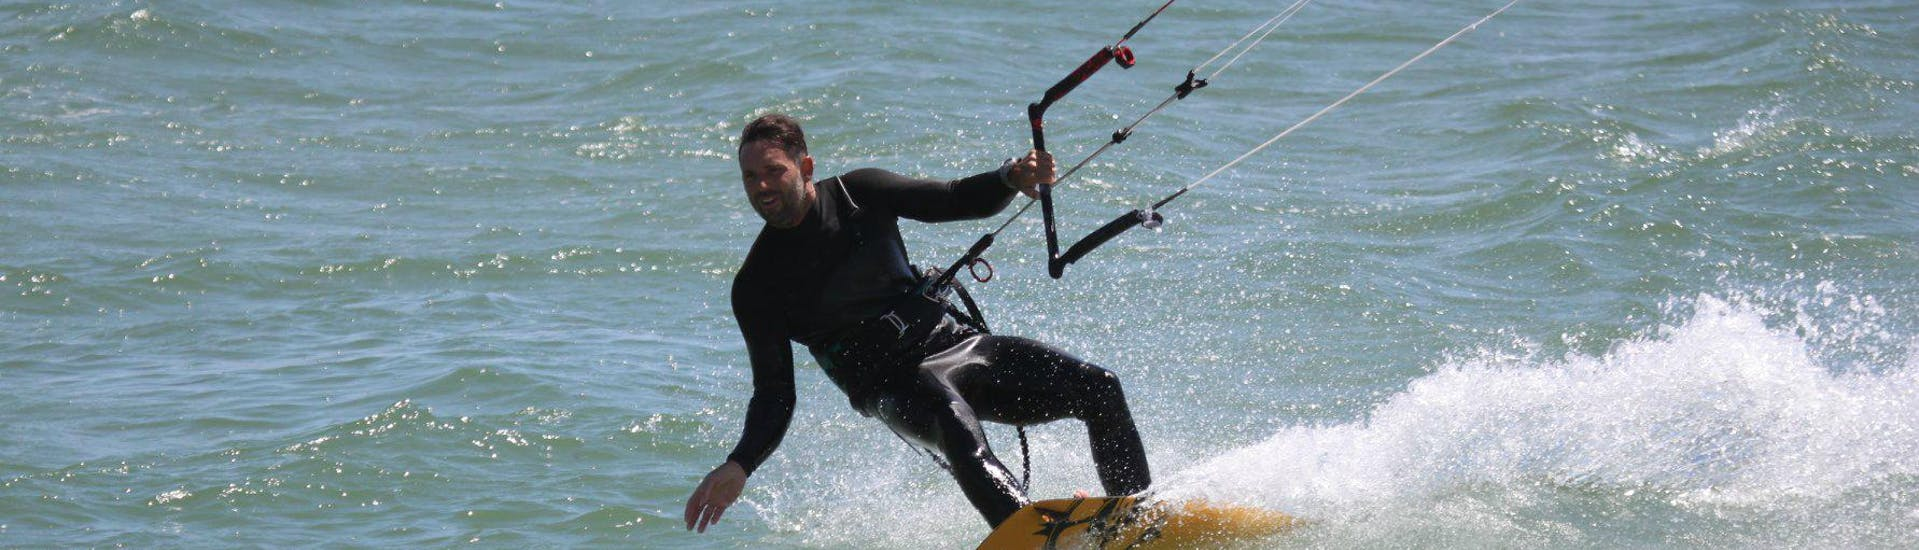 Private Kitesurfing Lesson for Kids & Adults - All Levels